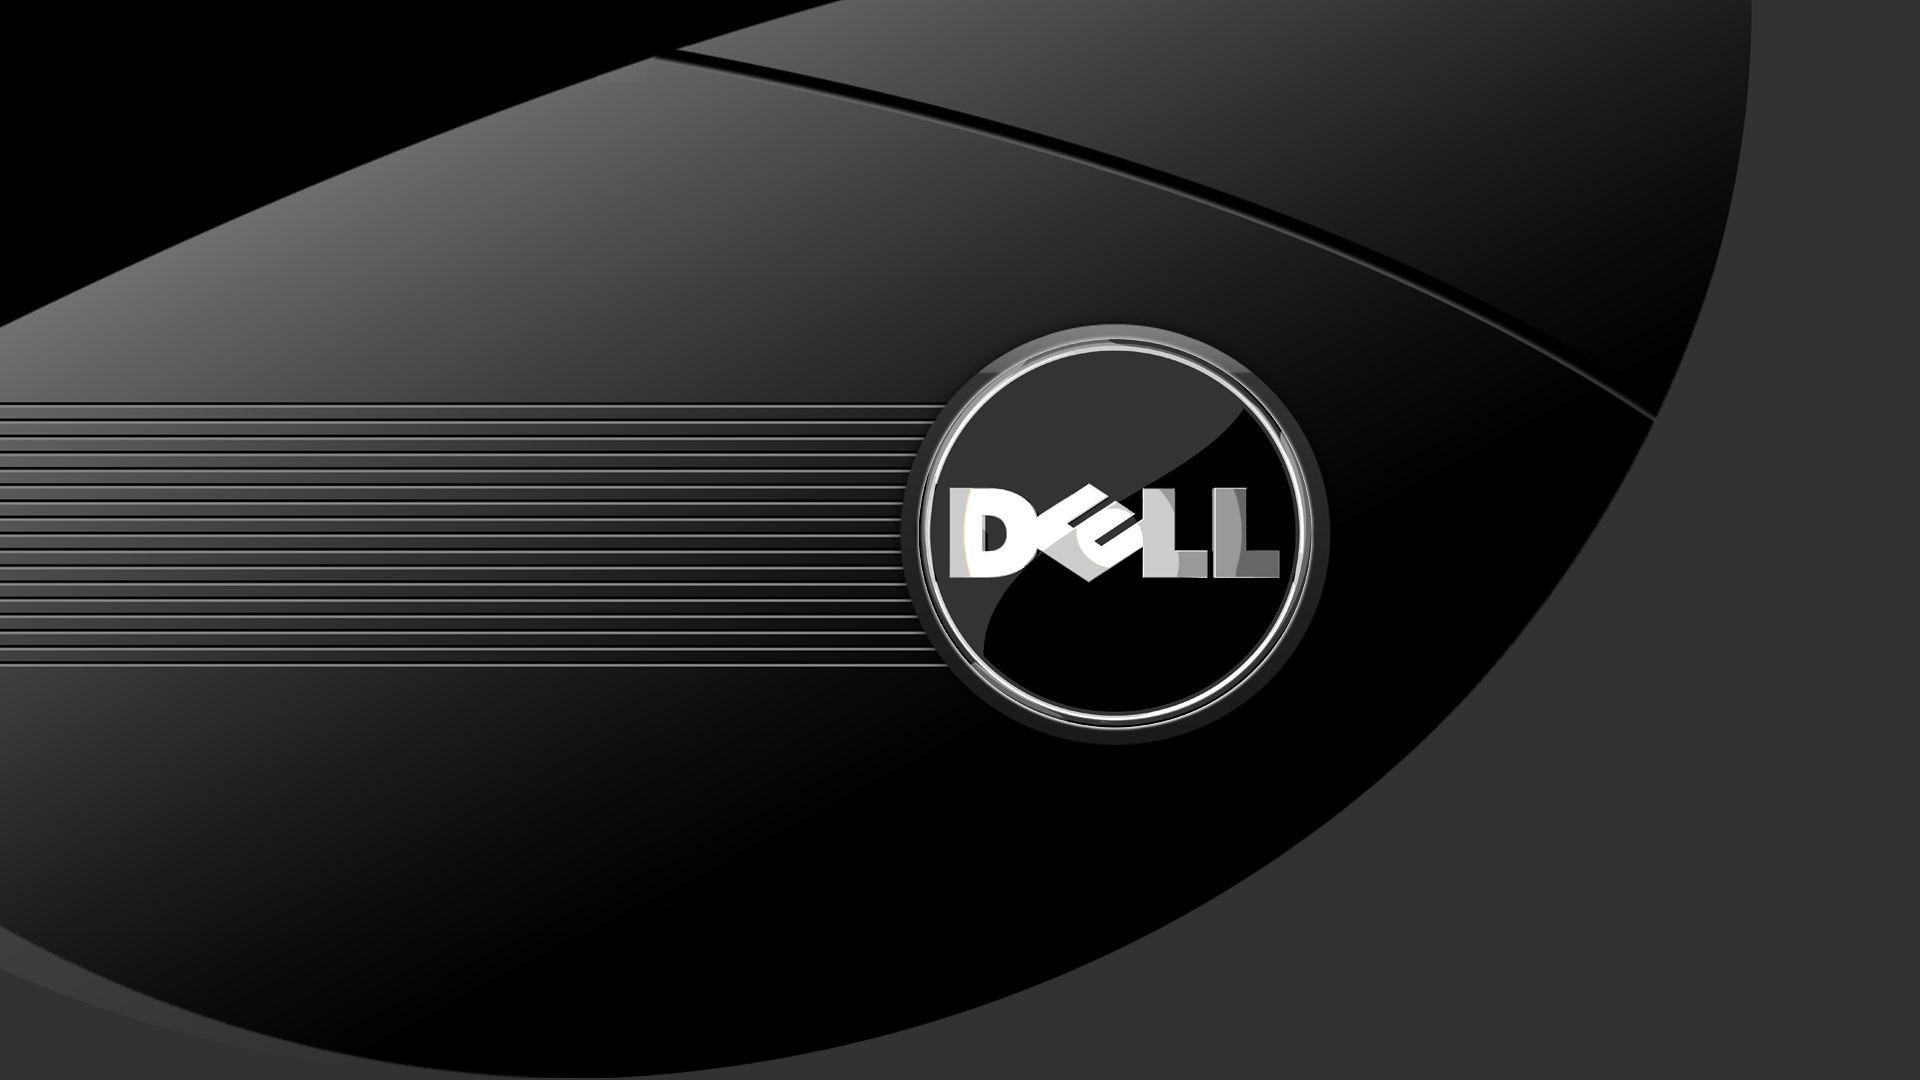 dell dimension wallpaper - photo #3